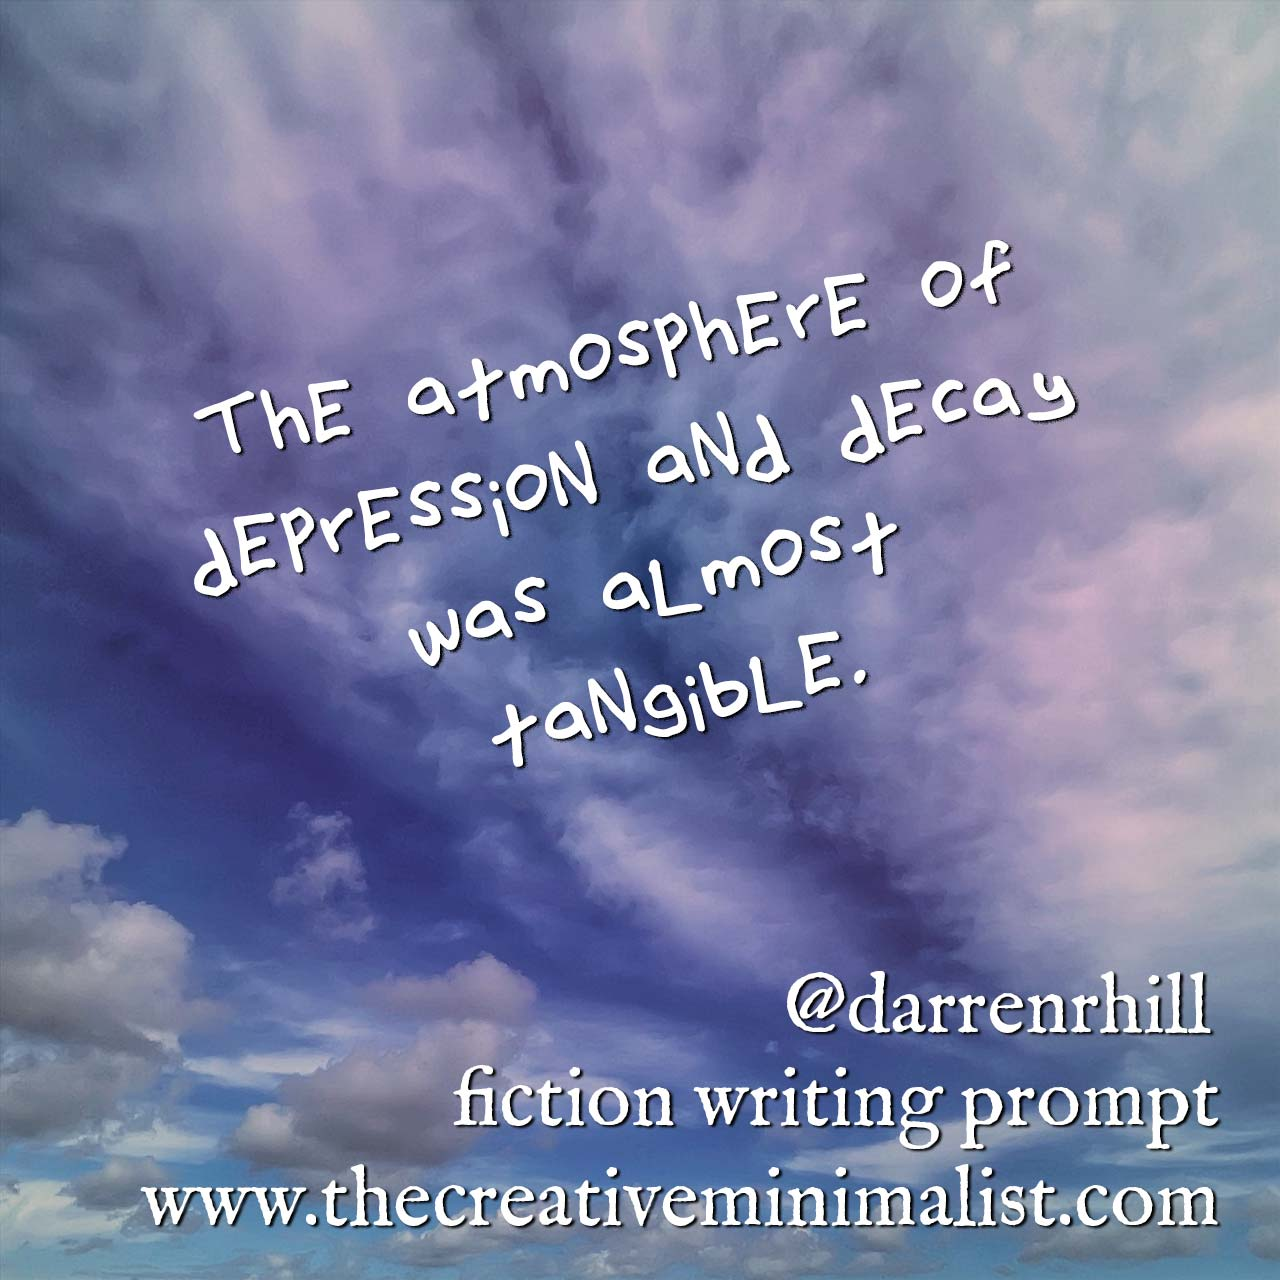 The atmosphere of depression and decay was almost tangible. fiction writing prompt